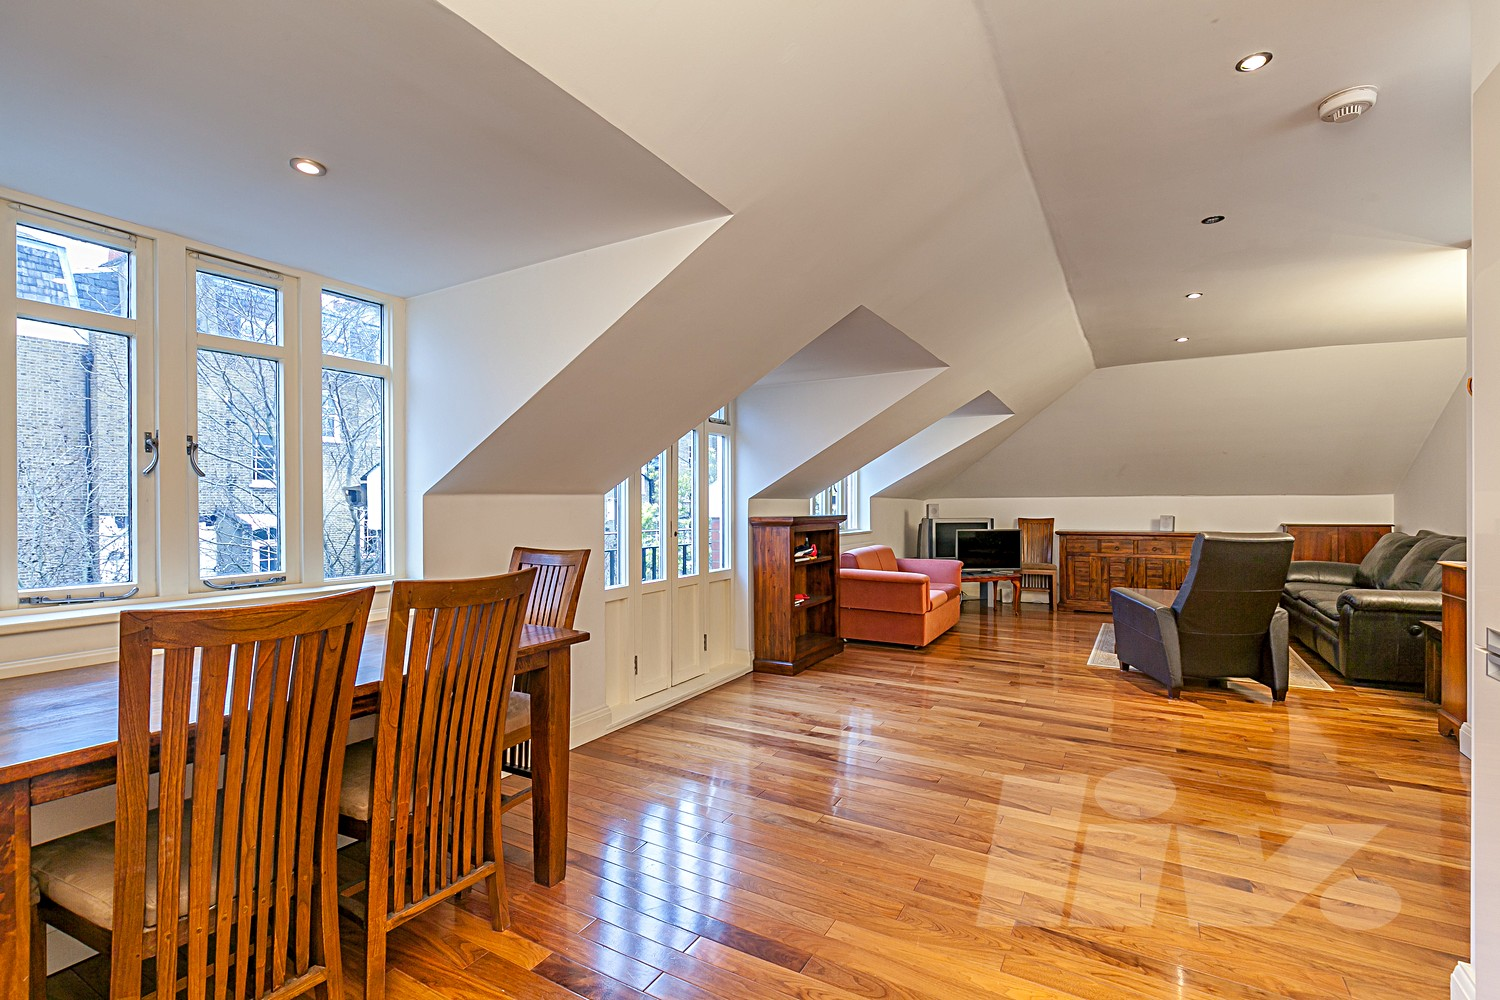 Property details: Let By Liv - Hill Road, St Johns Wood, NW8